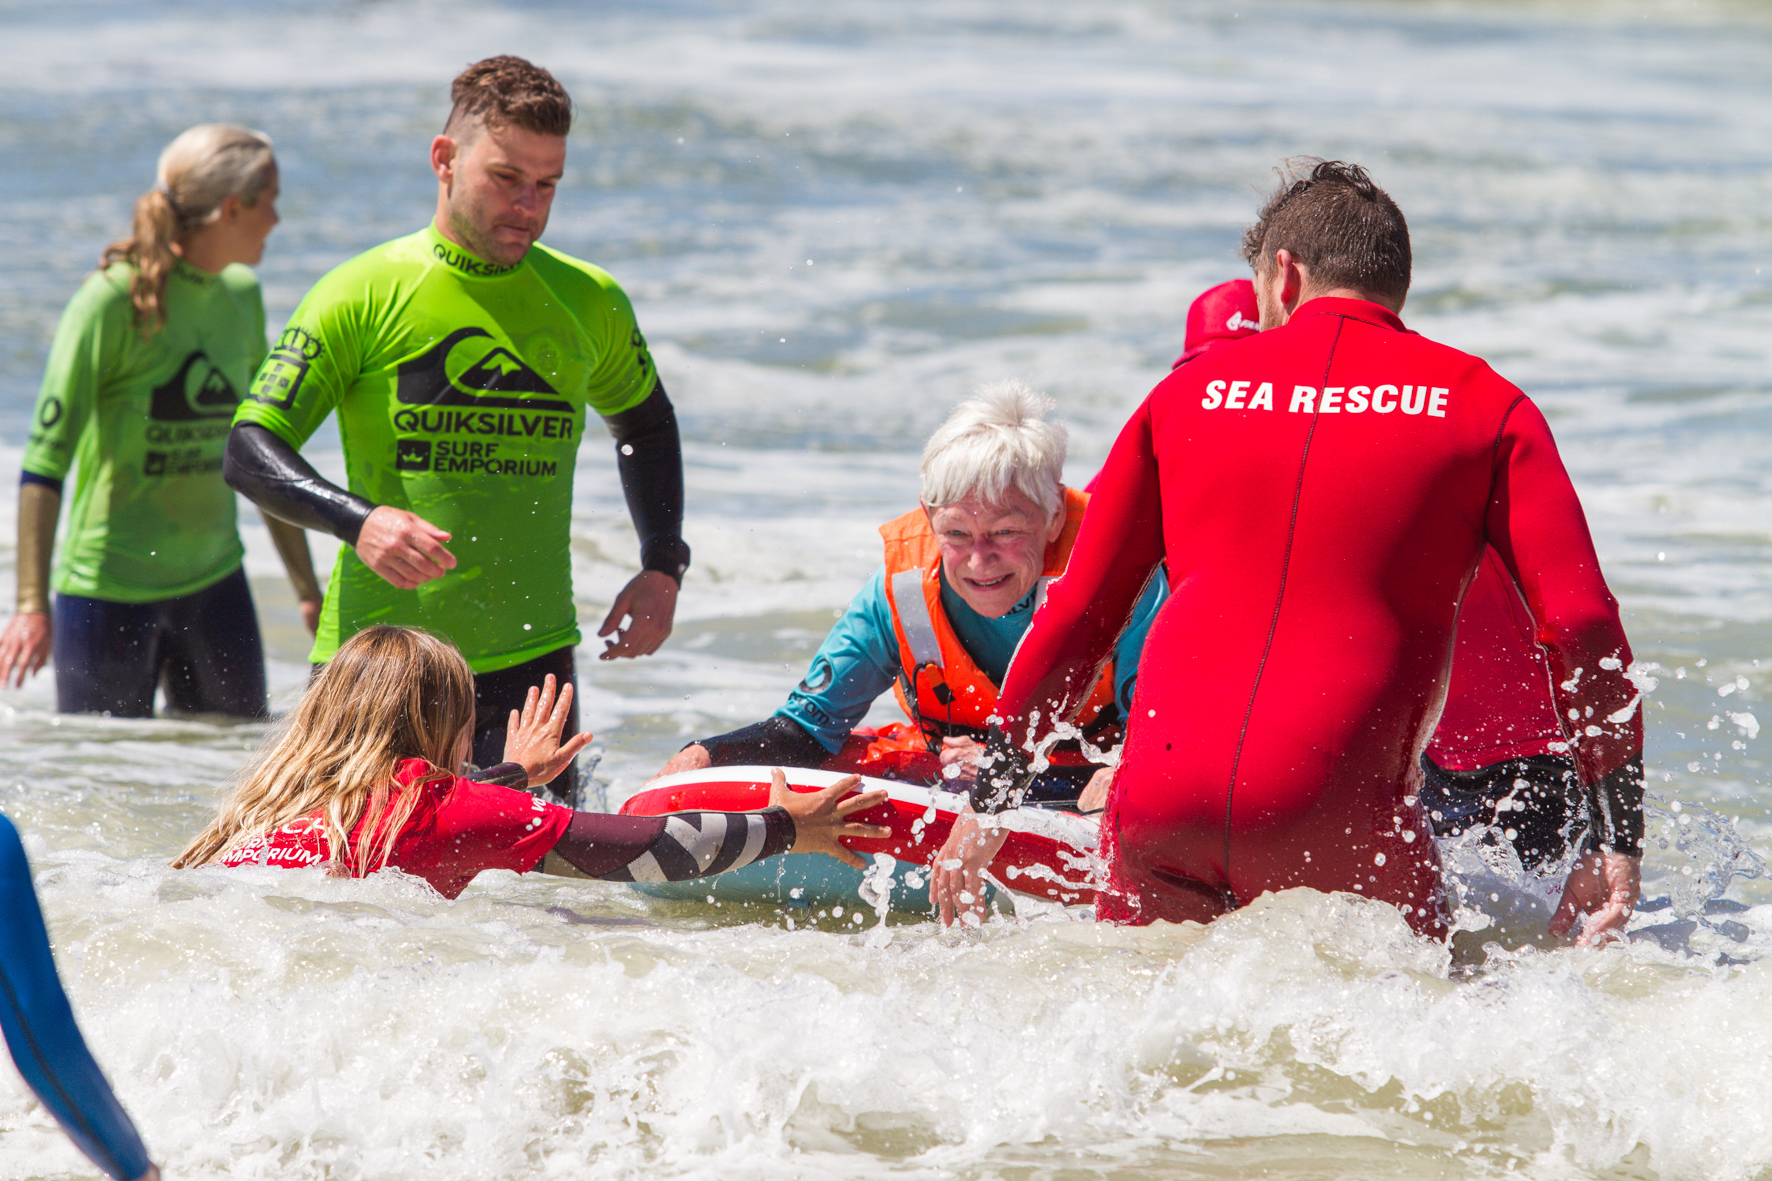 Become a Participant in a surf therapy and adaptive surfing programme